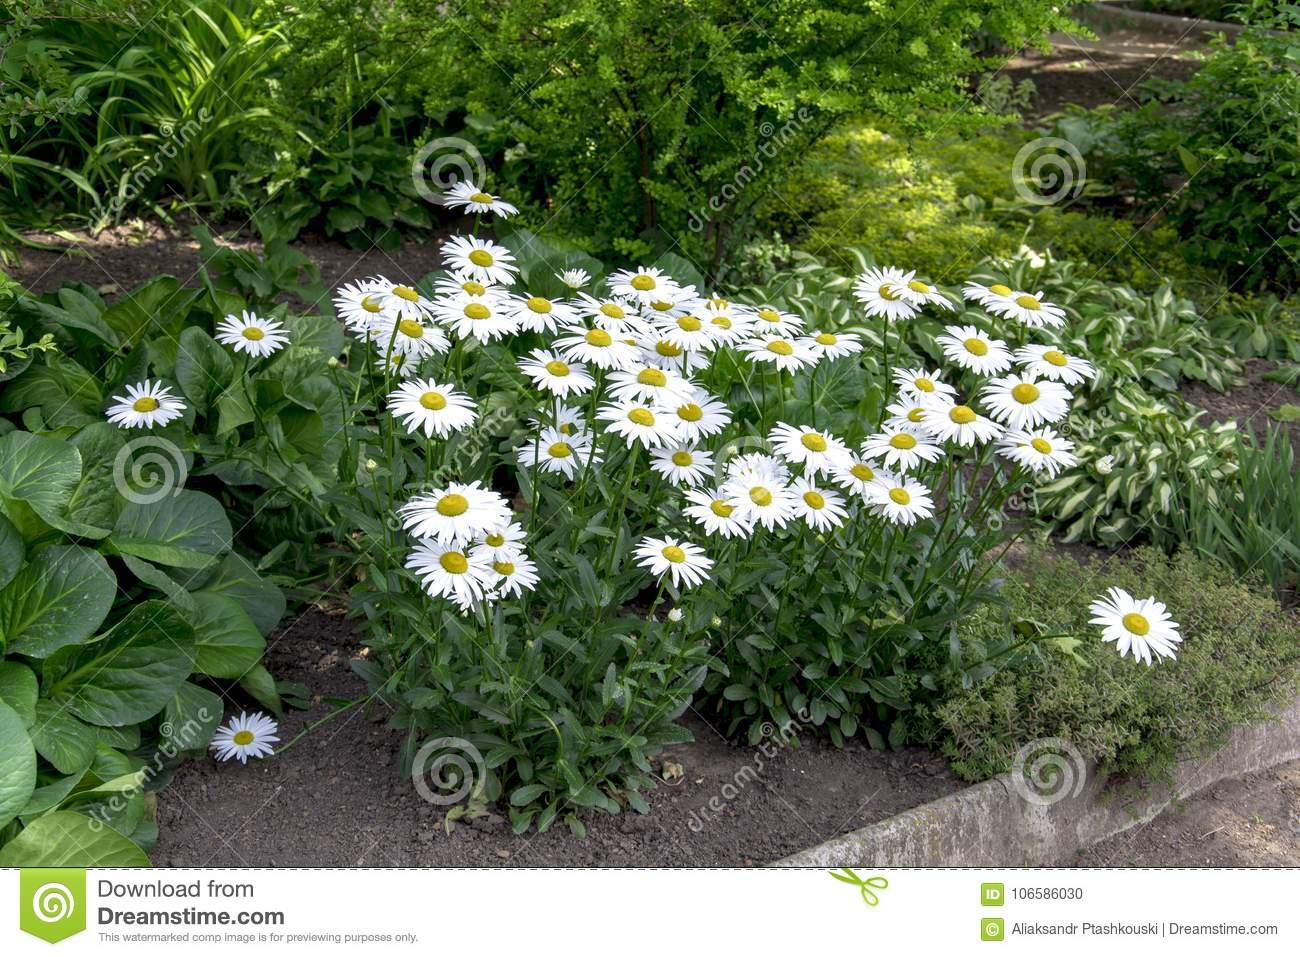 A Bush Of Large White Daisies In A Blooming Summer Garden Stock